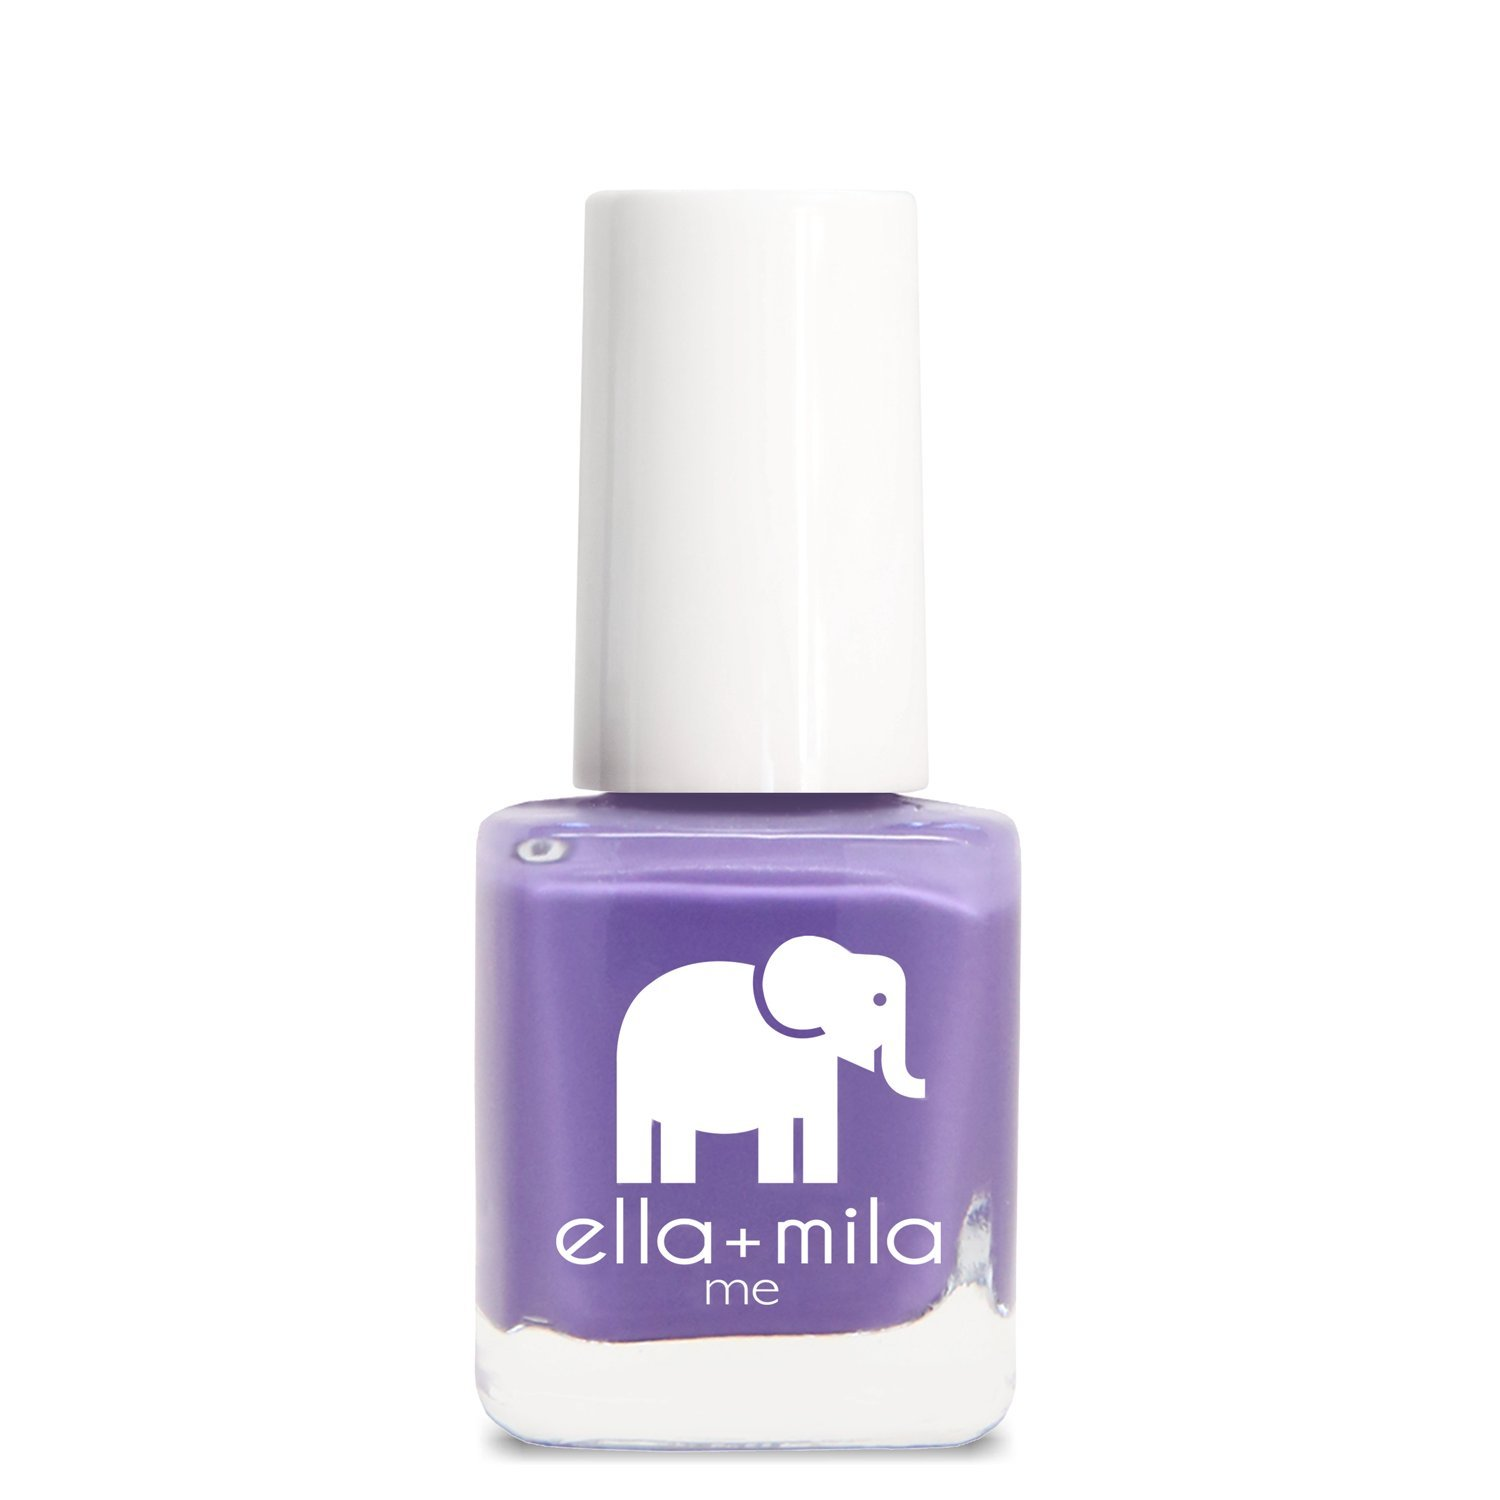 Amazon.com : ella+mila Nail Polish, Me Collection - Pinkterest : Beauty